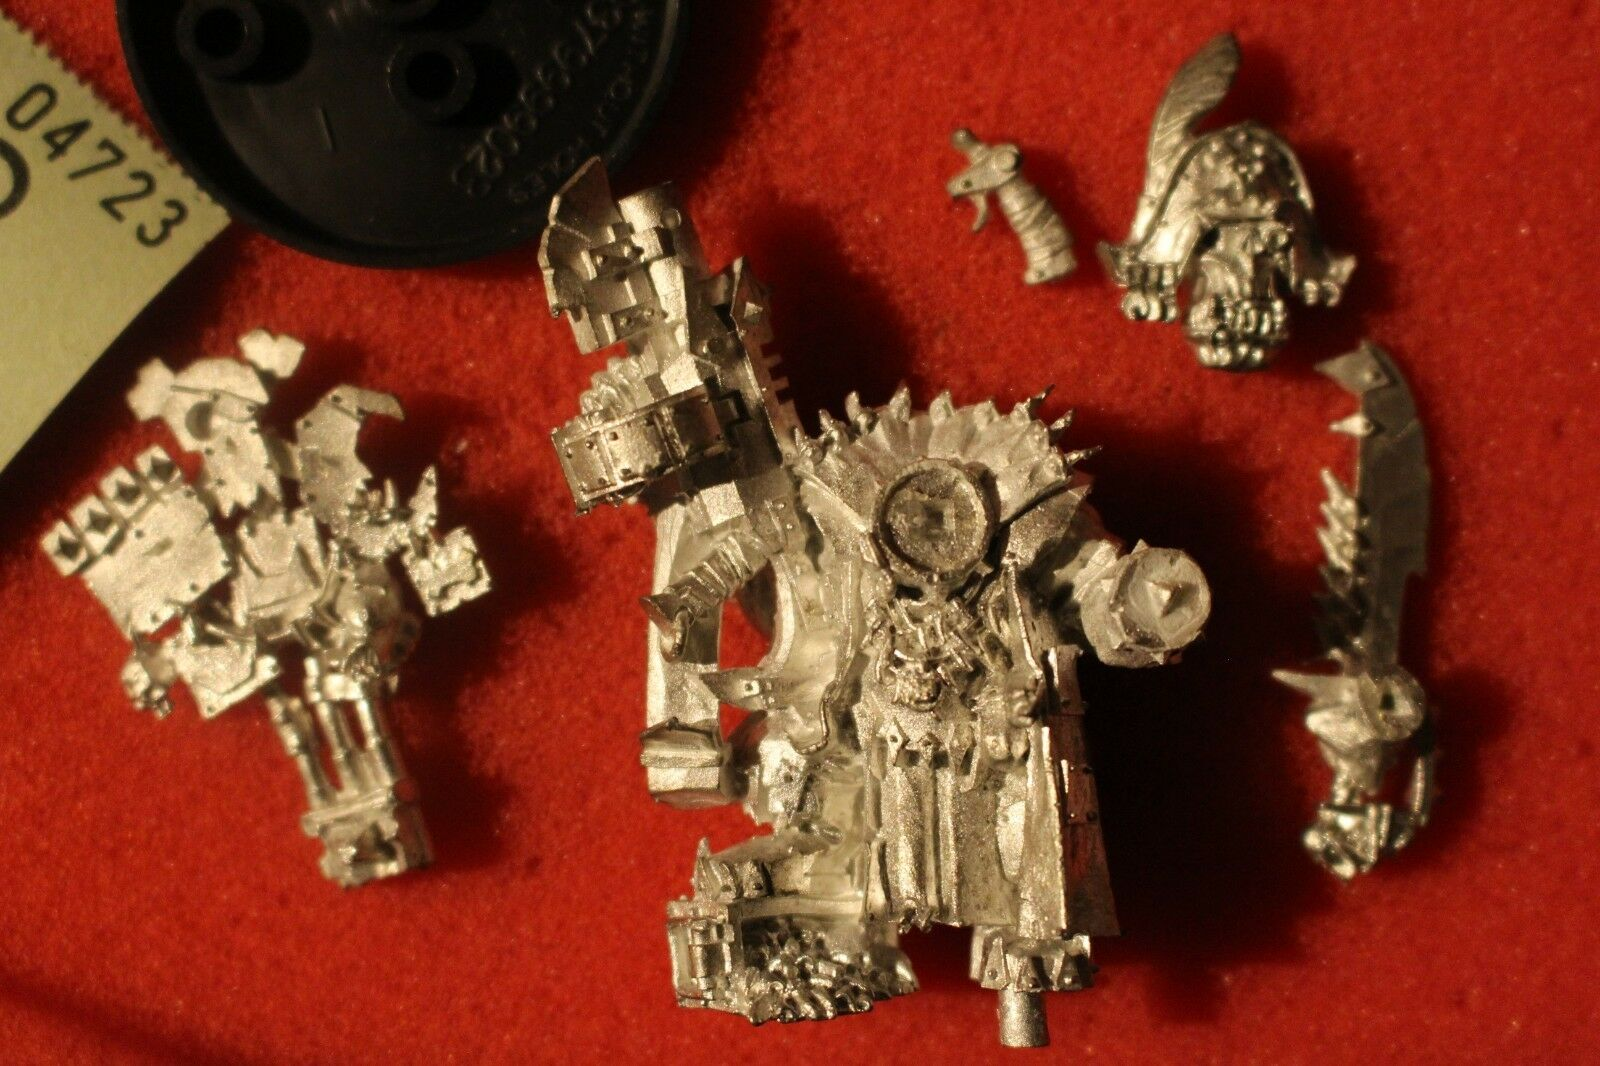 Games Workshop Warhammer 40k Orks Kaptin Badrukk OOP Metal WH40K New Freebooters